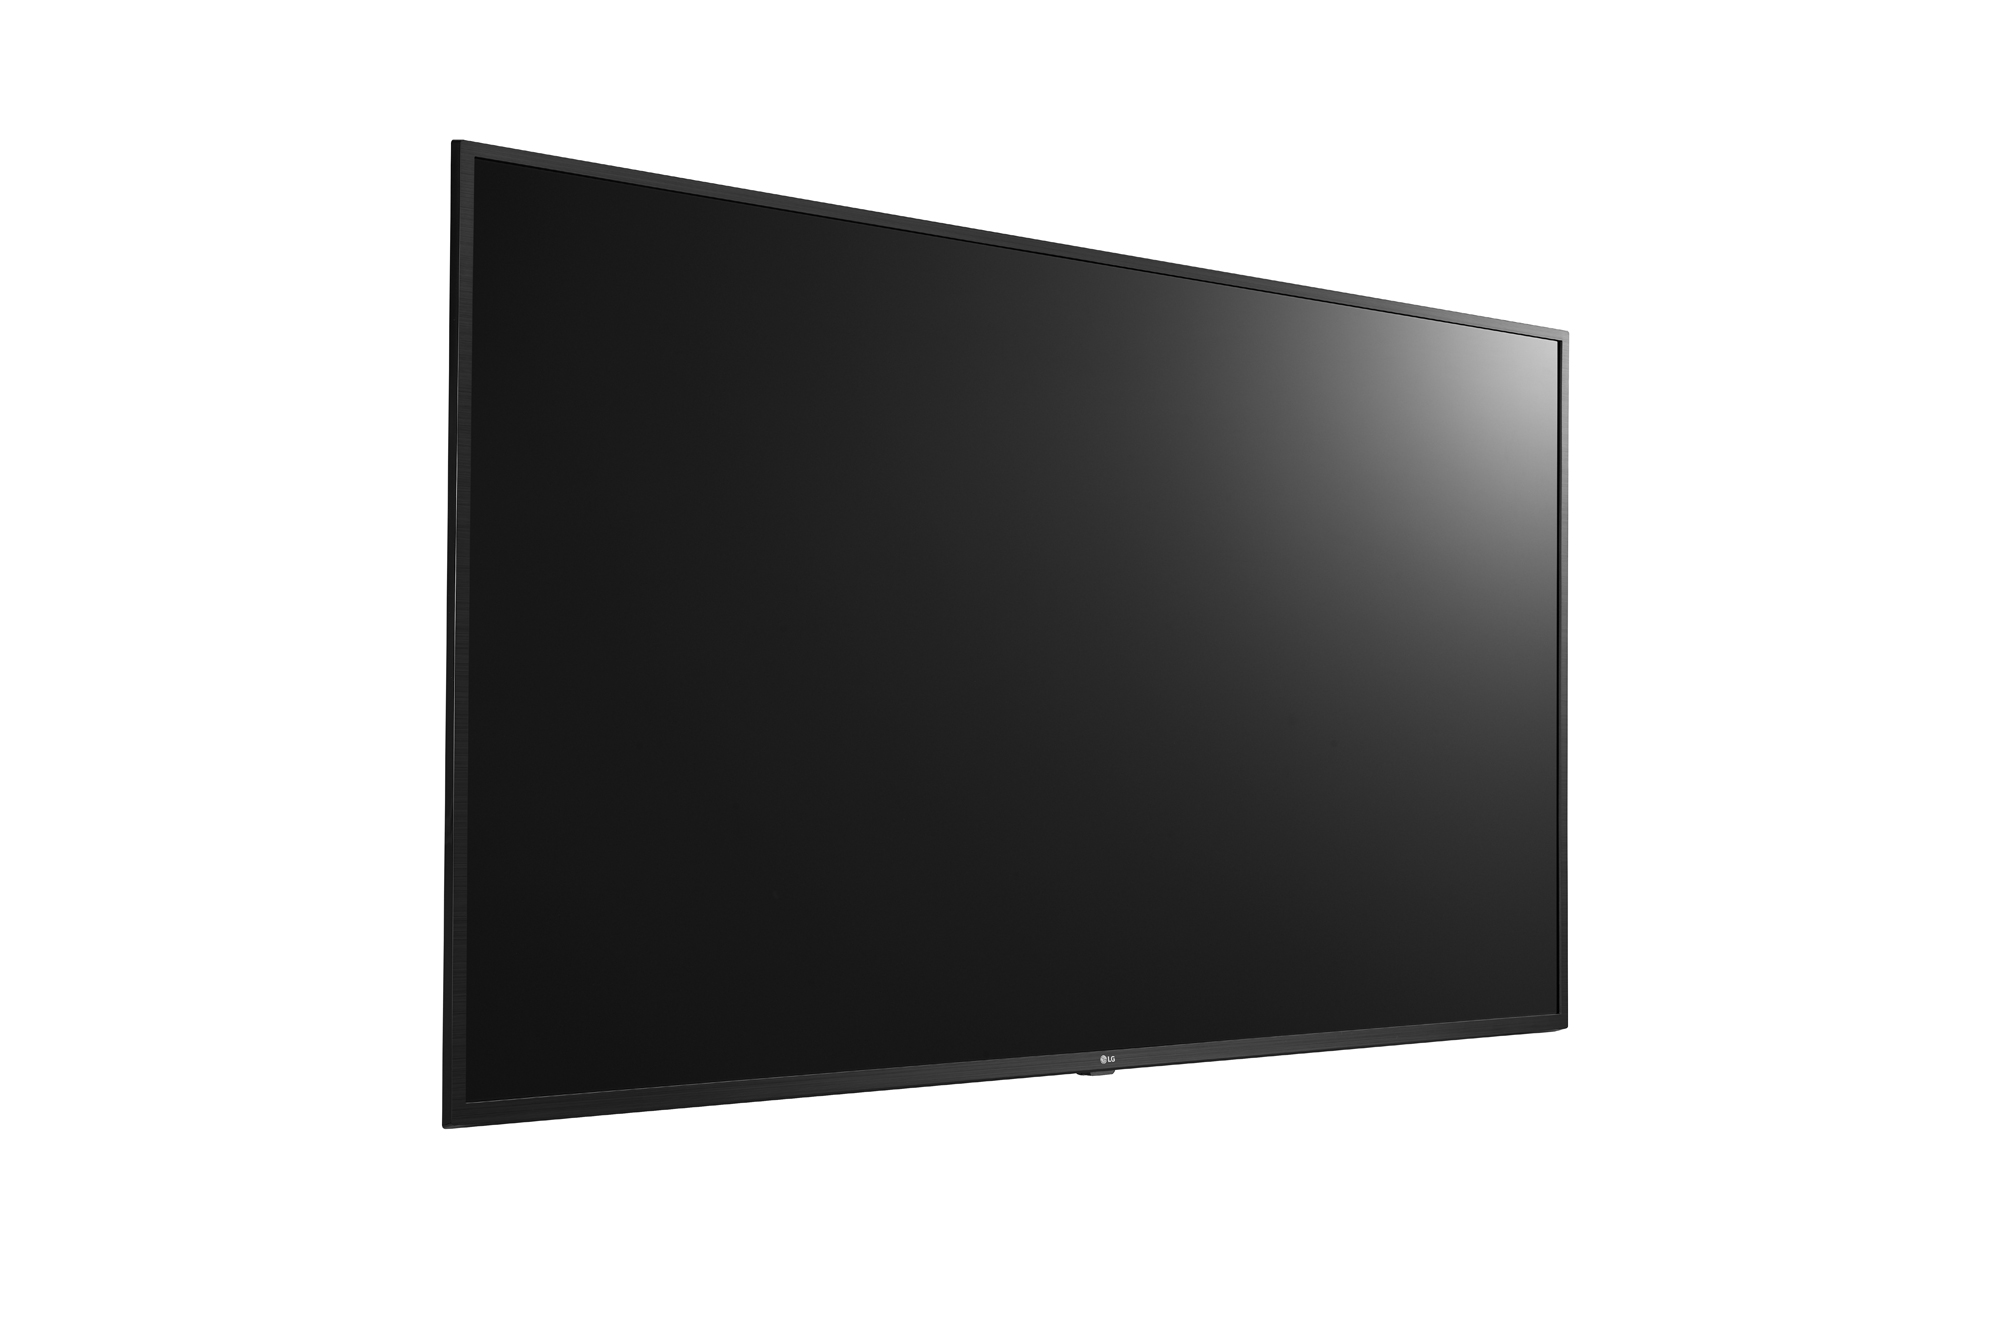 LG Smart TV Signage 55UT640S (EU) 6